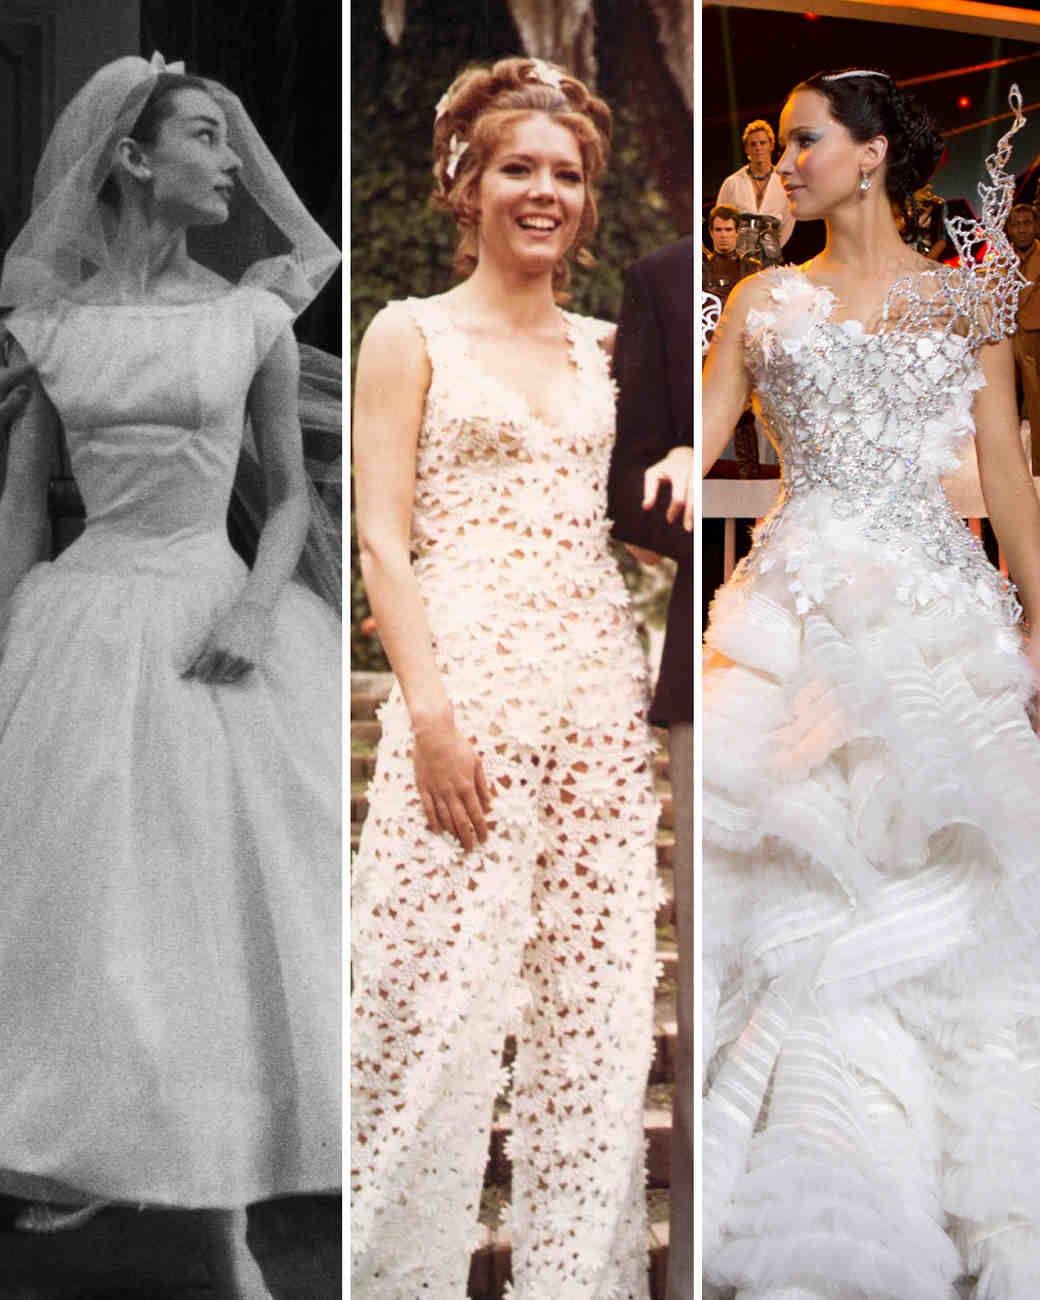 c05c15e7868 The Most Iconic Movie Wedding Dresses of All Time